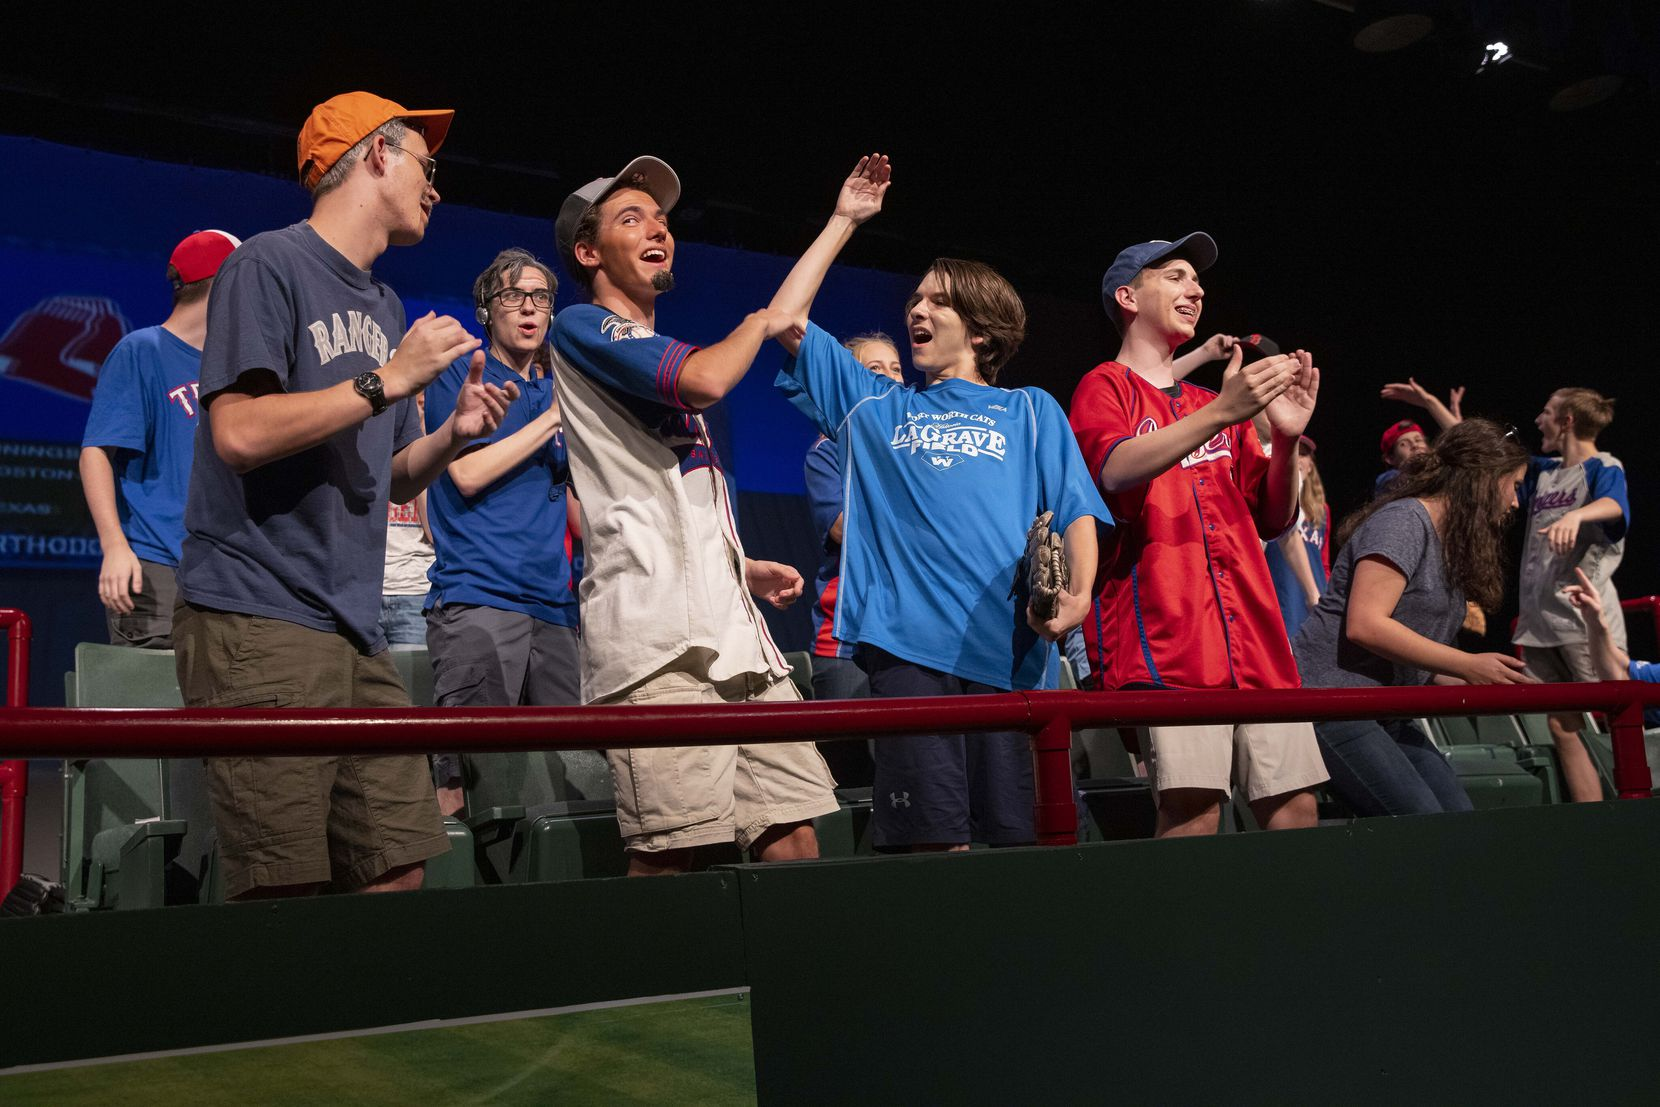 """Students reenact the home crowd during the 2011 Rangers versus Red Sox game during dress rehearsal the school's play """"One Strike Away"""" on Wednesday, Oct. 6, 2021, at Keller High School in Keller. (Juan Figueroa/The Dallas Morning News)"""